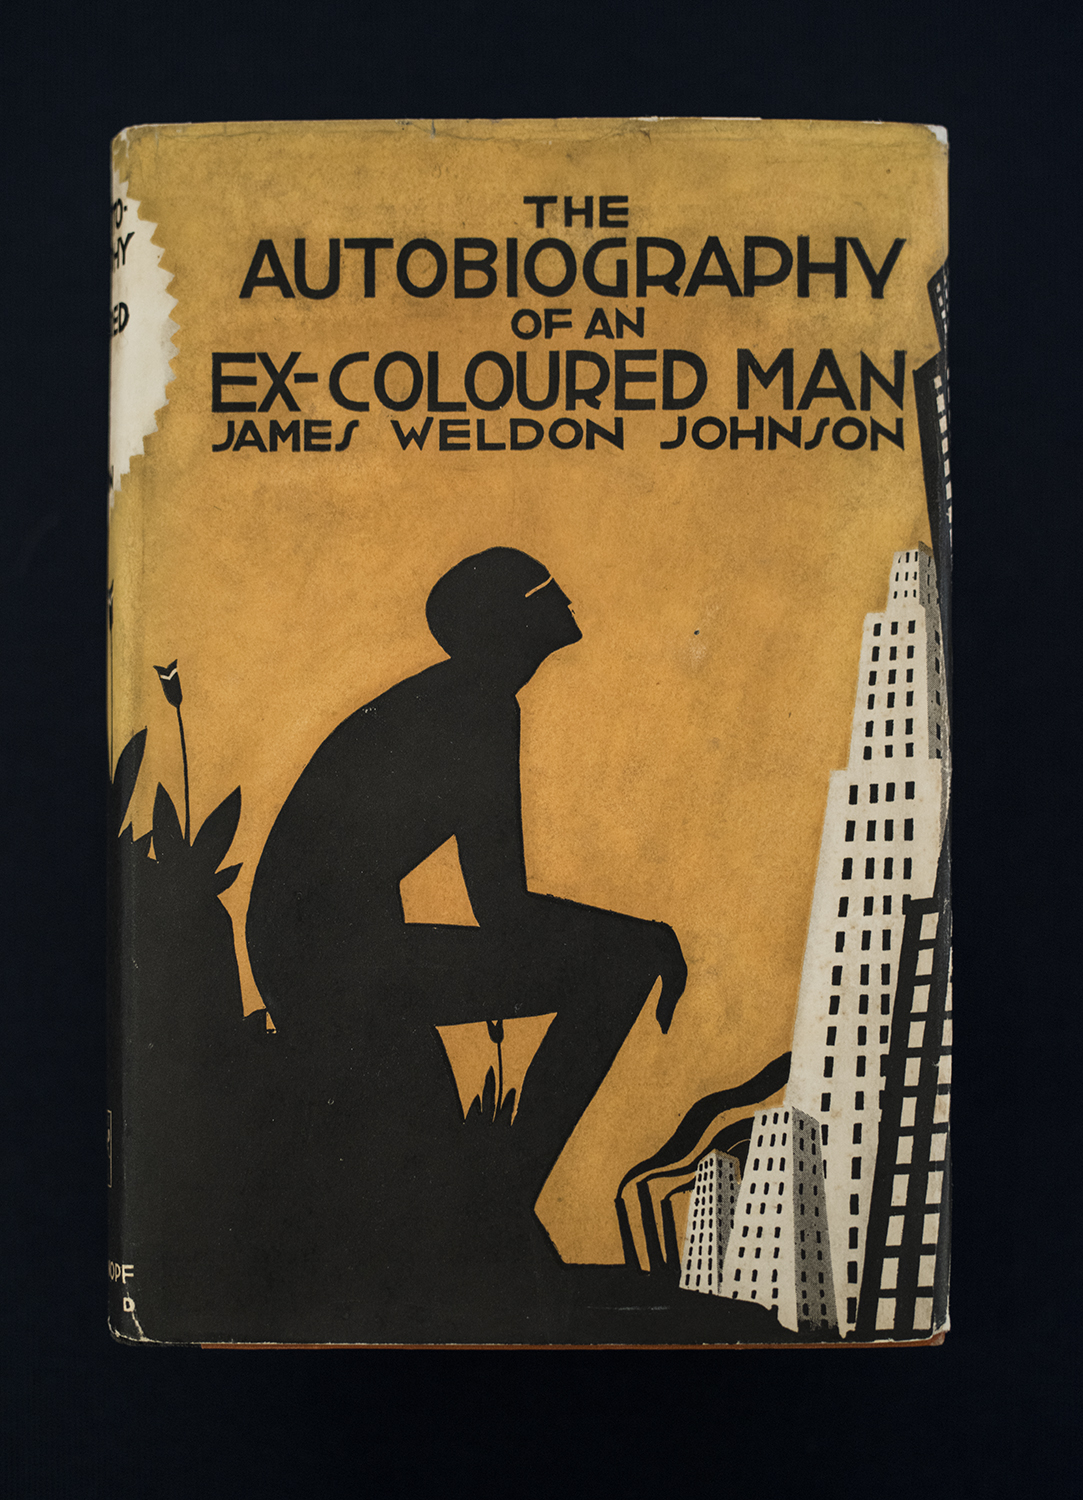 The Autobiography of an Ex-Colored Man,  1927, Published by Sherman, French, and Company.James Weldon Johnson (American, b. 1871 - 1938). Dust Jacket: Aaron Douglas (American, b. 1899 - 1979).